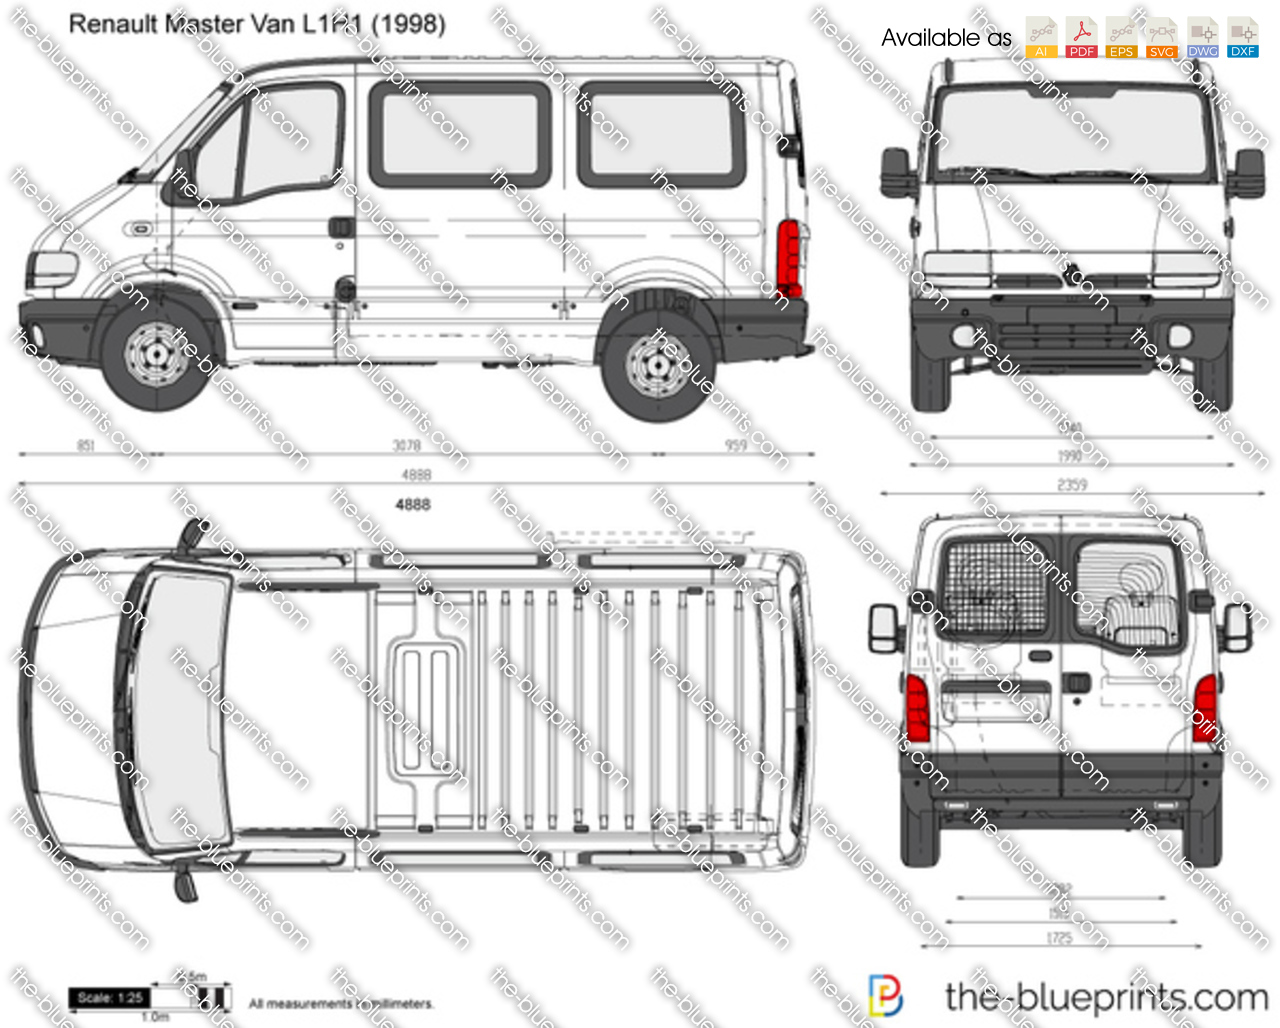 renault trafic van dimensions nike air le presto des. Black Bedroom Furniture Sets. Home Design Ideas